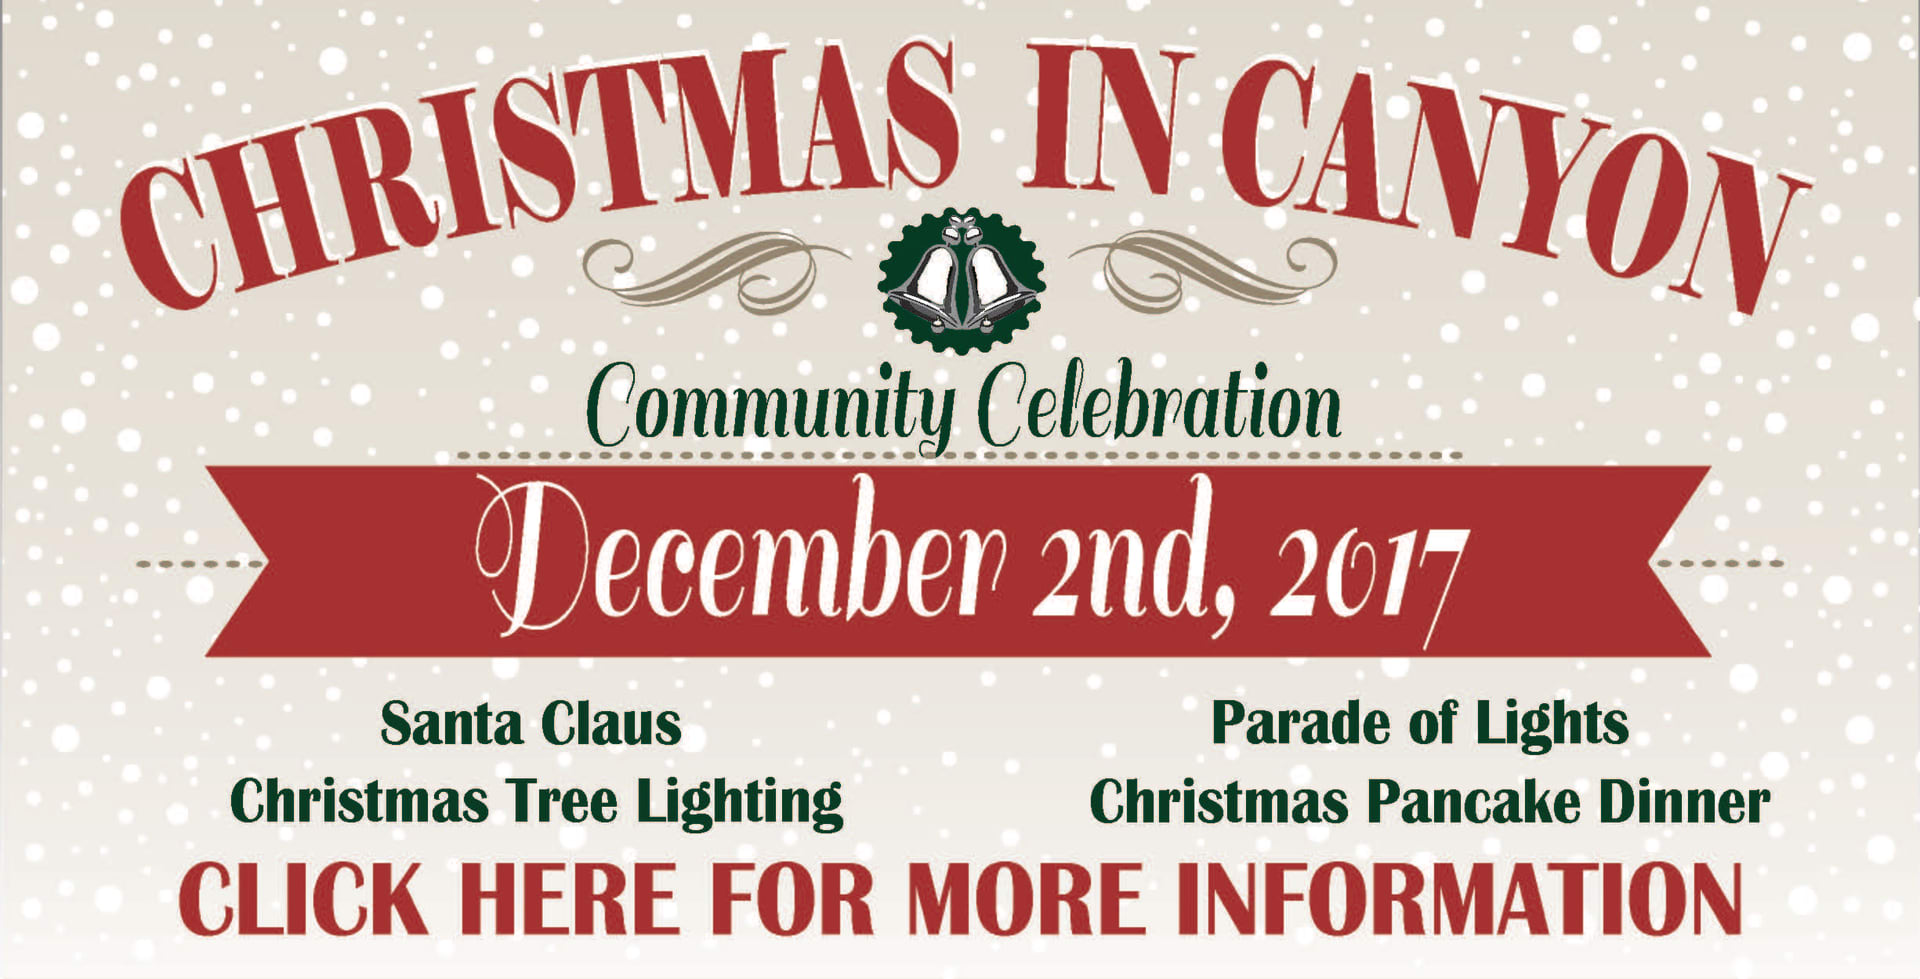 CLICK HERE FOR MORE INFORMATION ON CHRISTMAS IN CANYON